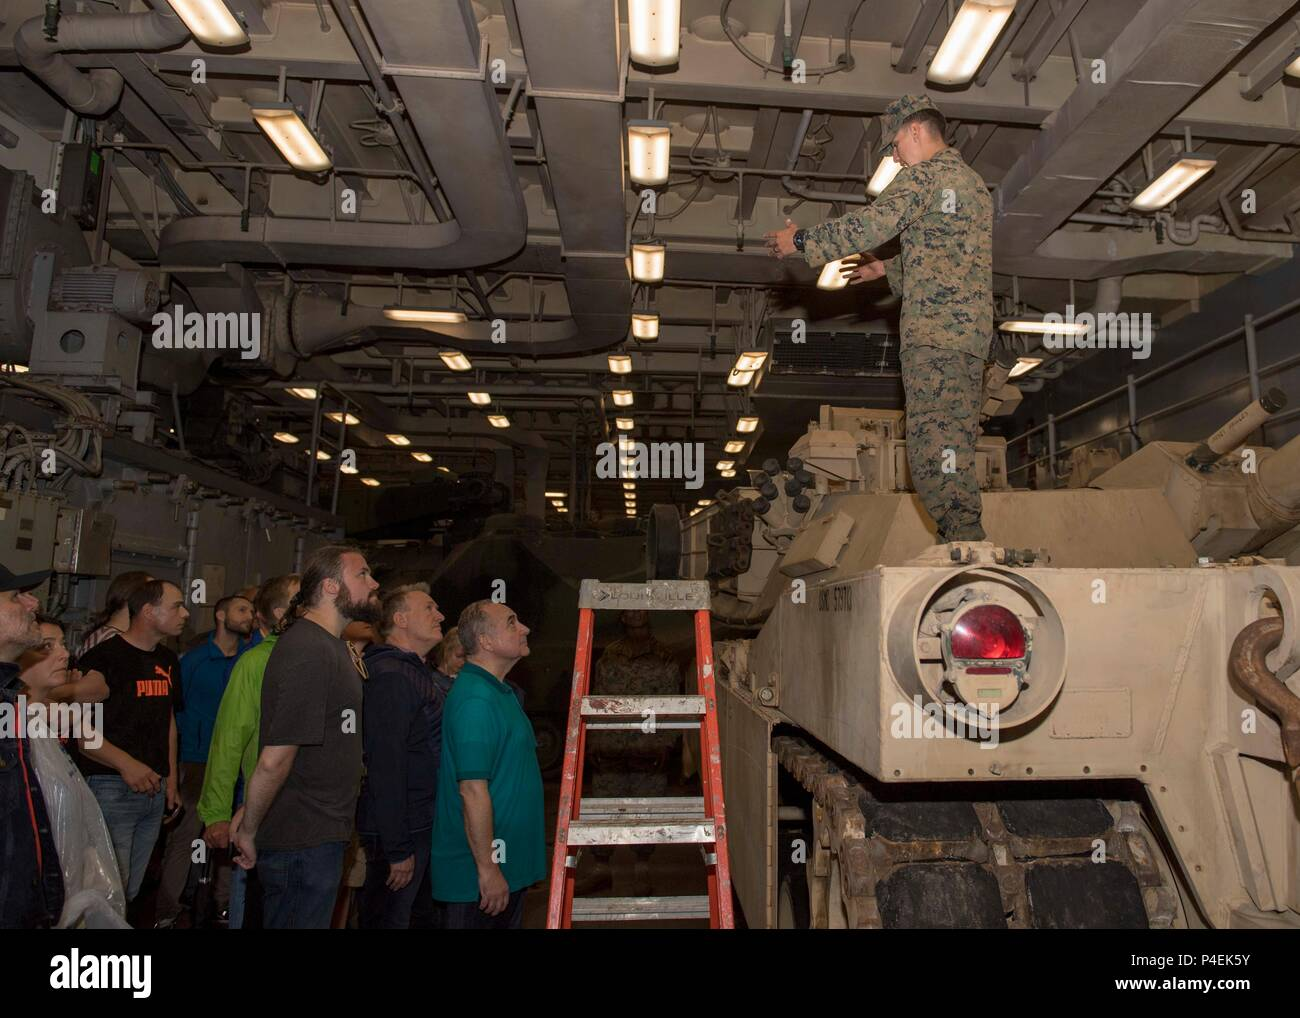 180616-N-PC620-0050  KIEL, Germany (June 16, 2018) U.S. Marine Cpl. Jonathan Klein, from San Antonio, gives a tour of an M1A1 Abrams tank, attached to the 26th Marine Expeditionary Unit, aboard the Harpers Ferry-class dock landing ship USS Oak Hill (LSD 51), in Kiel, Germany, during Kiel Week 2018, June 16. Oak Hill, home-ported in Virginia Beach, Virginia, is conducting naval operations in the U.S. 6th Fleet area of operations. (U.S. Navy photo by Mass Communication Specialist 3rd Class Michael H. Lehman/Released) Stock Photo